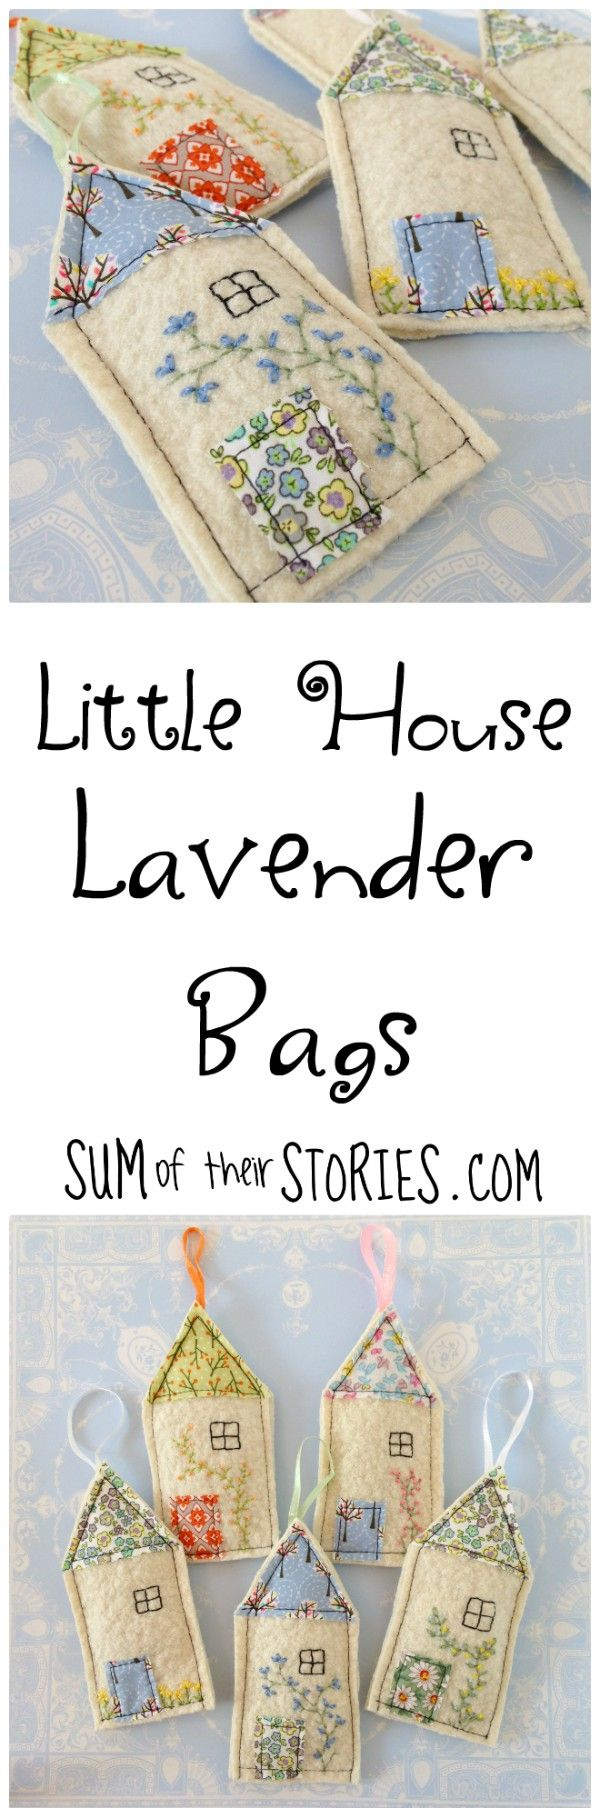 Little house embroidered lavender bags